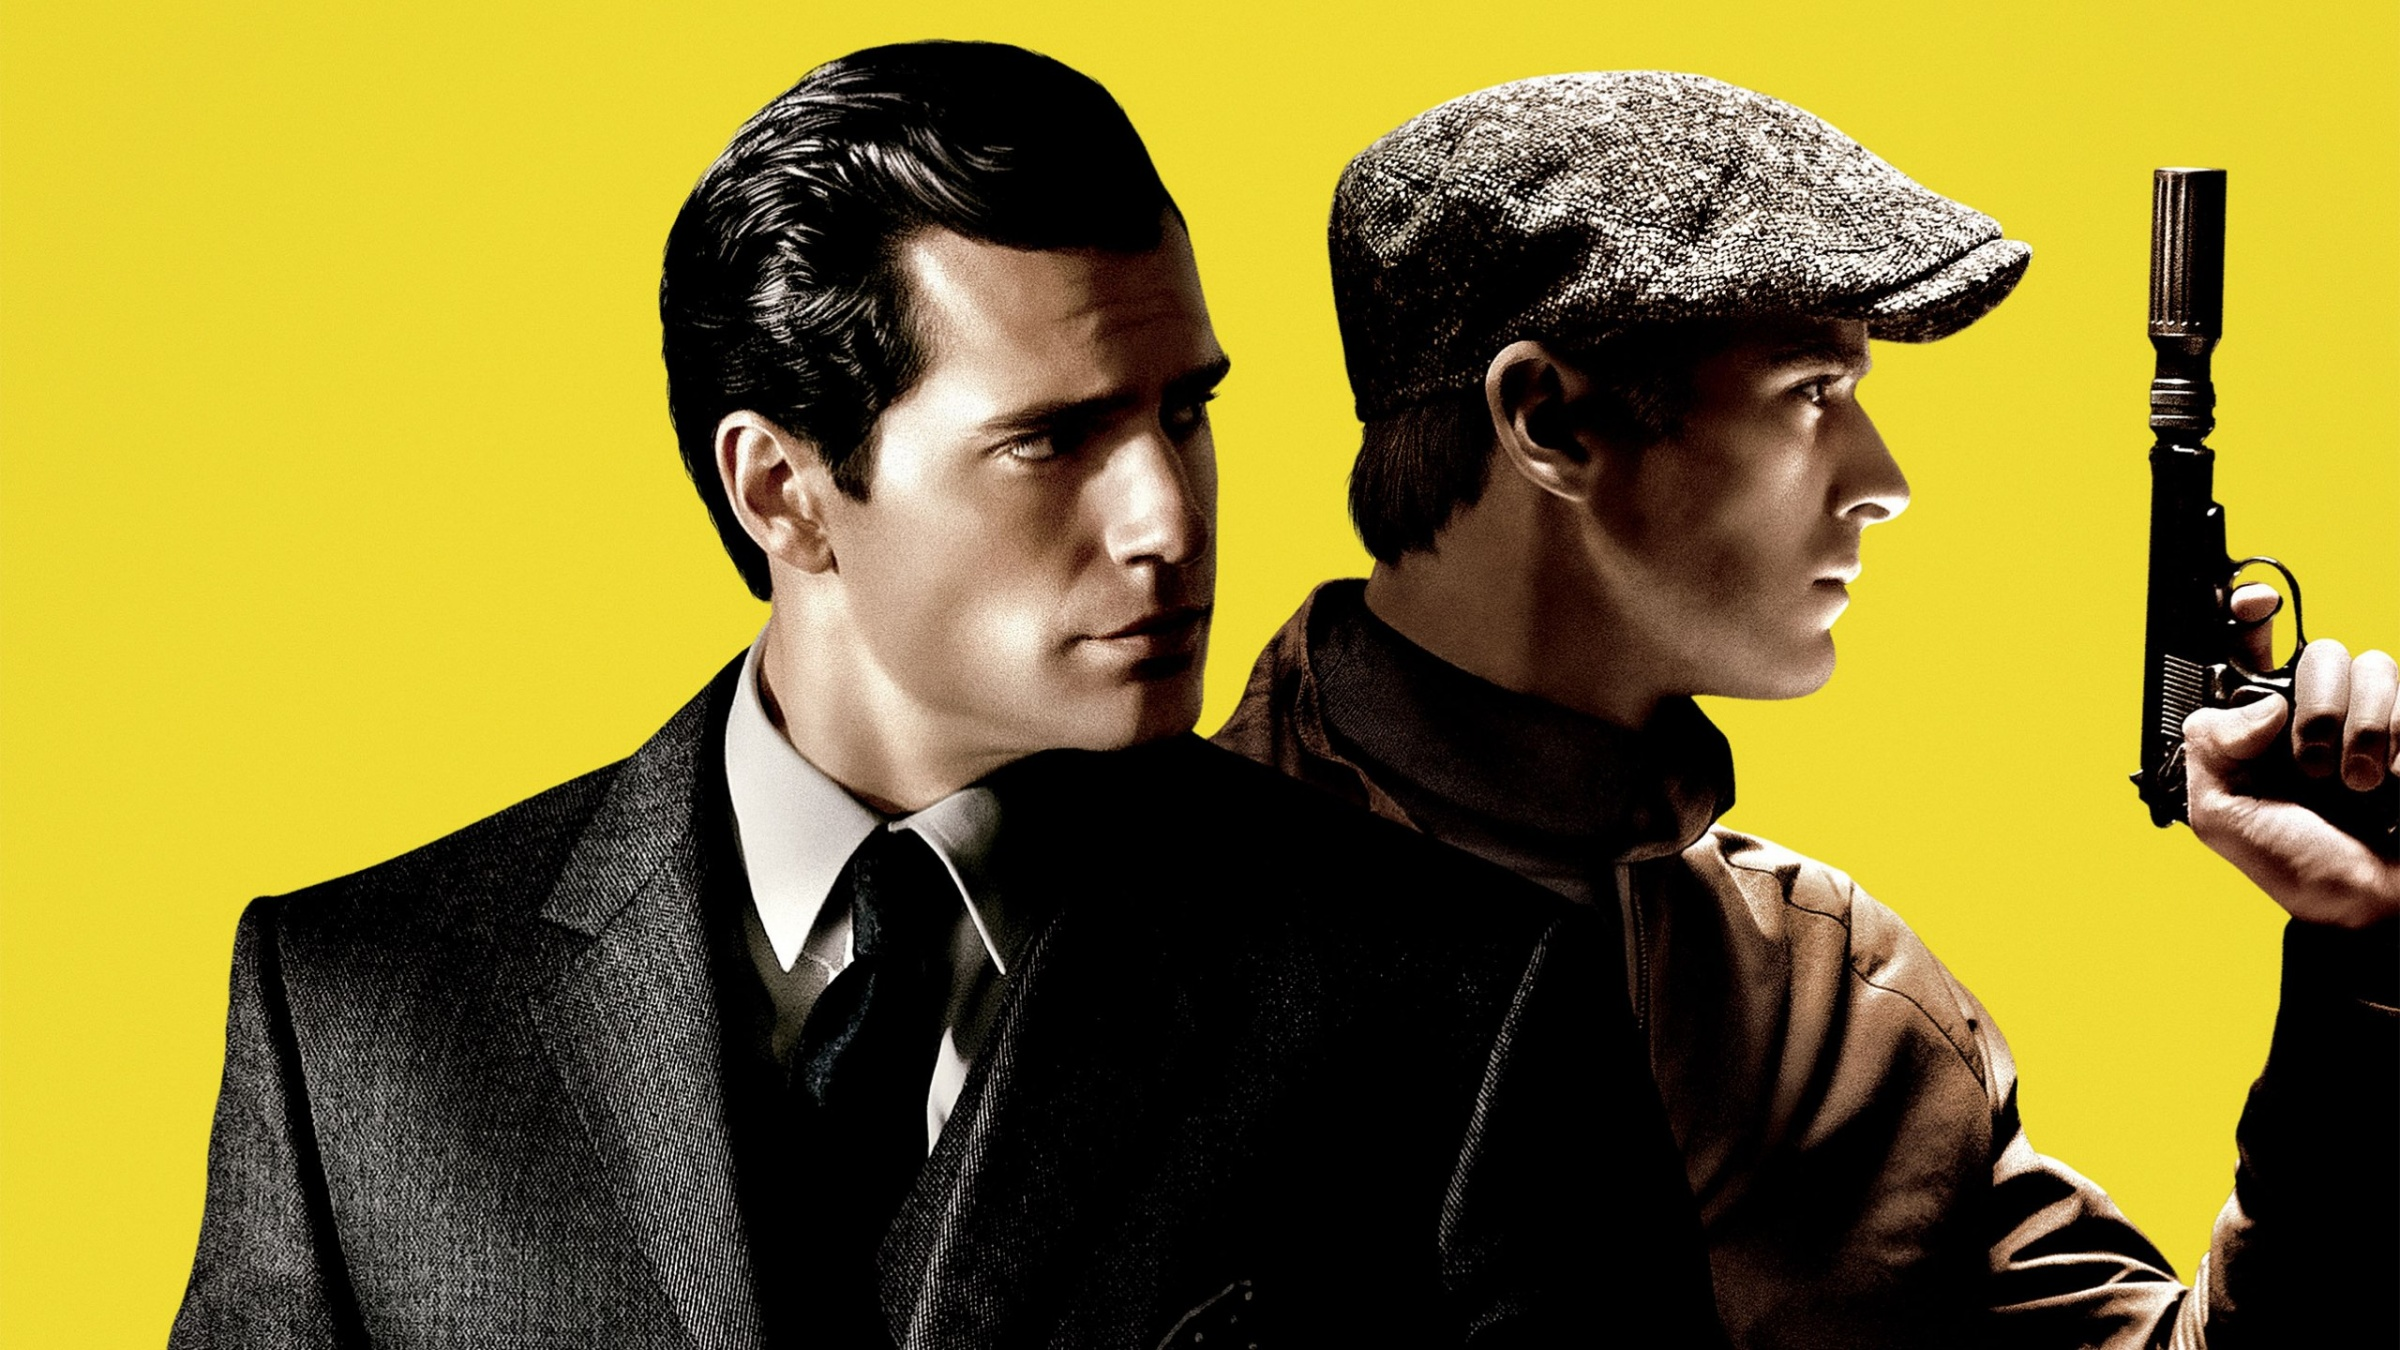 Review | The Man from U.N.C.L.E. (2015)